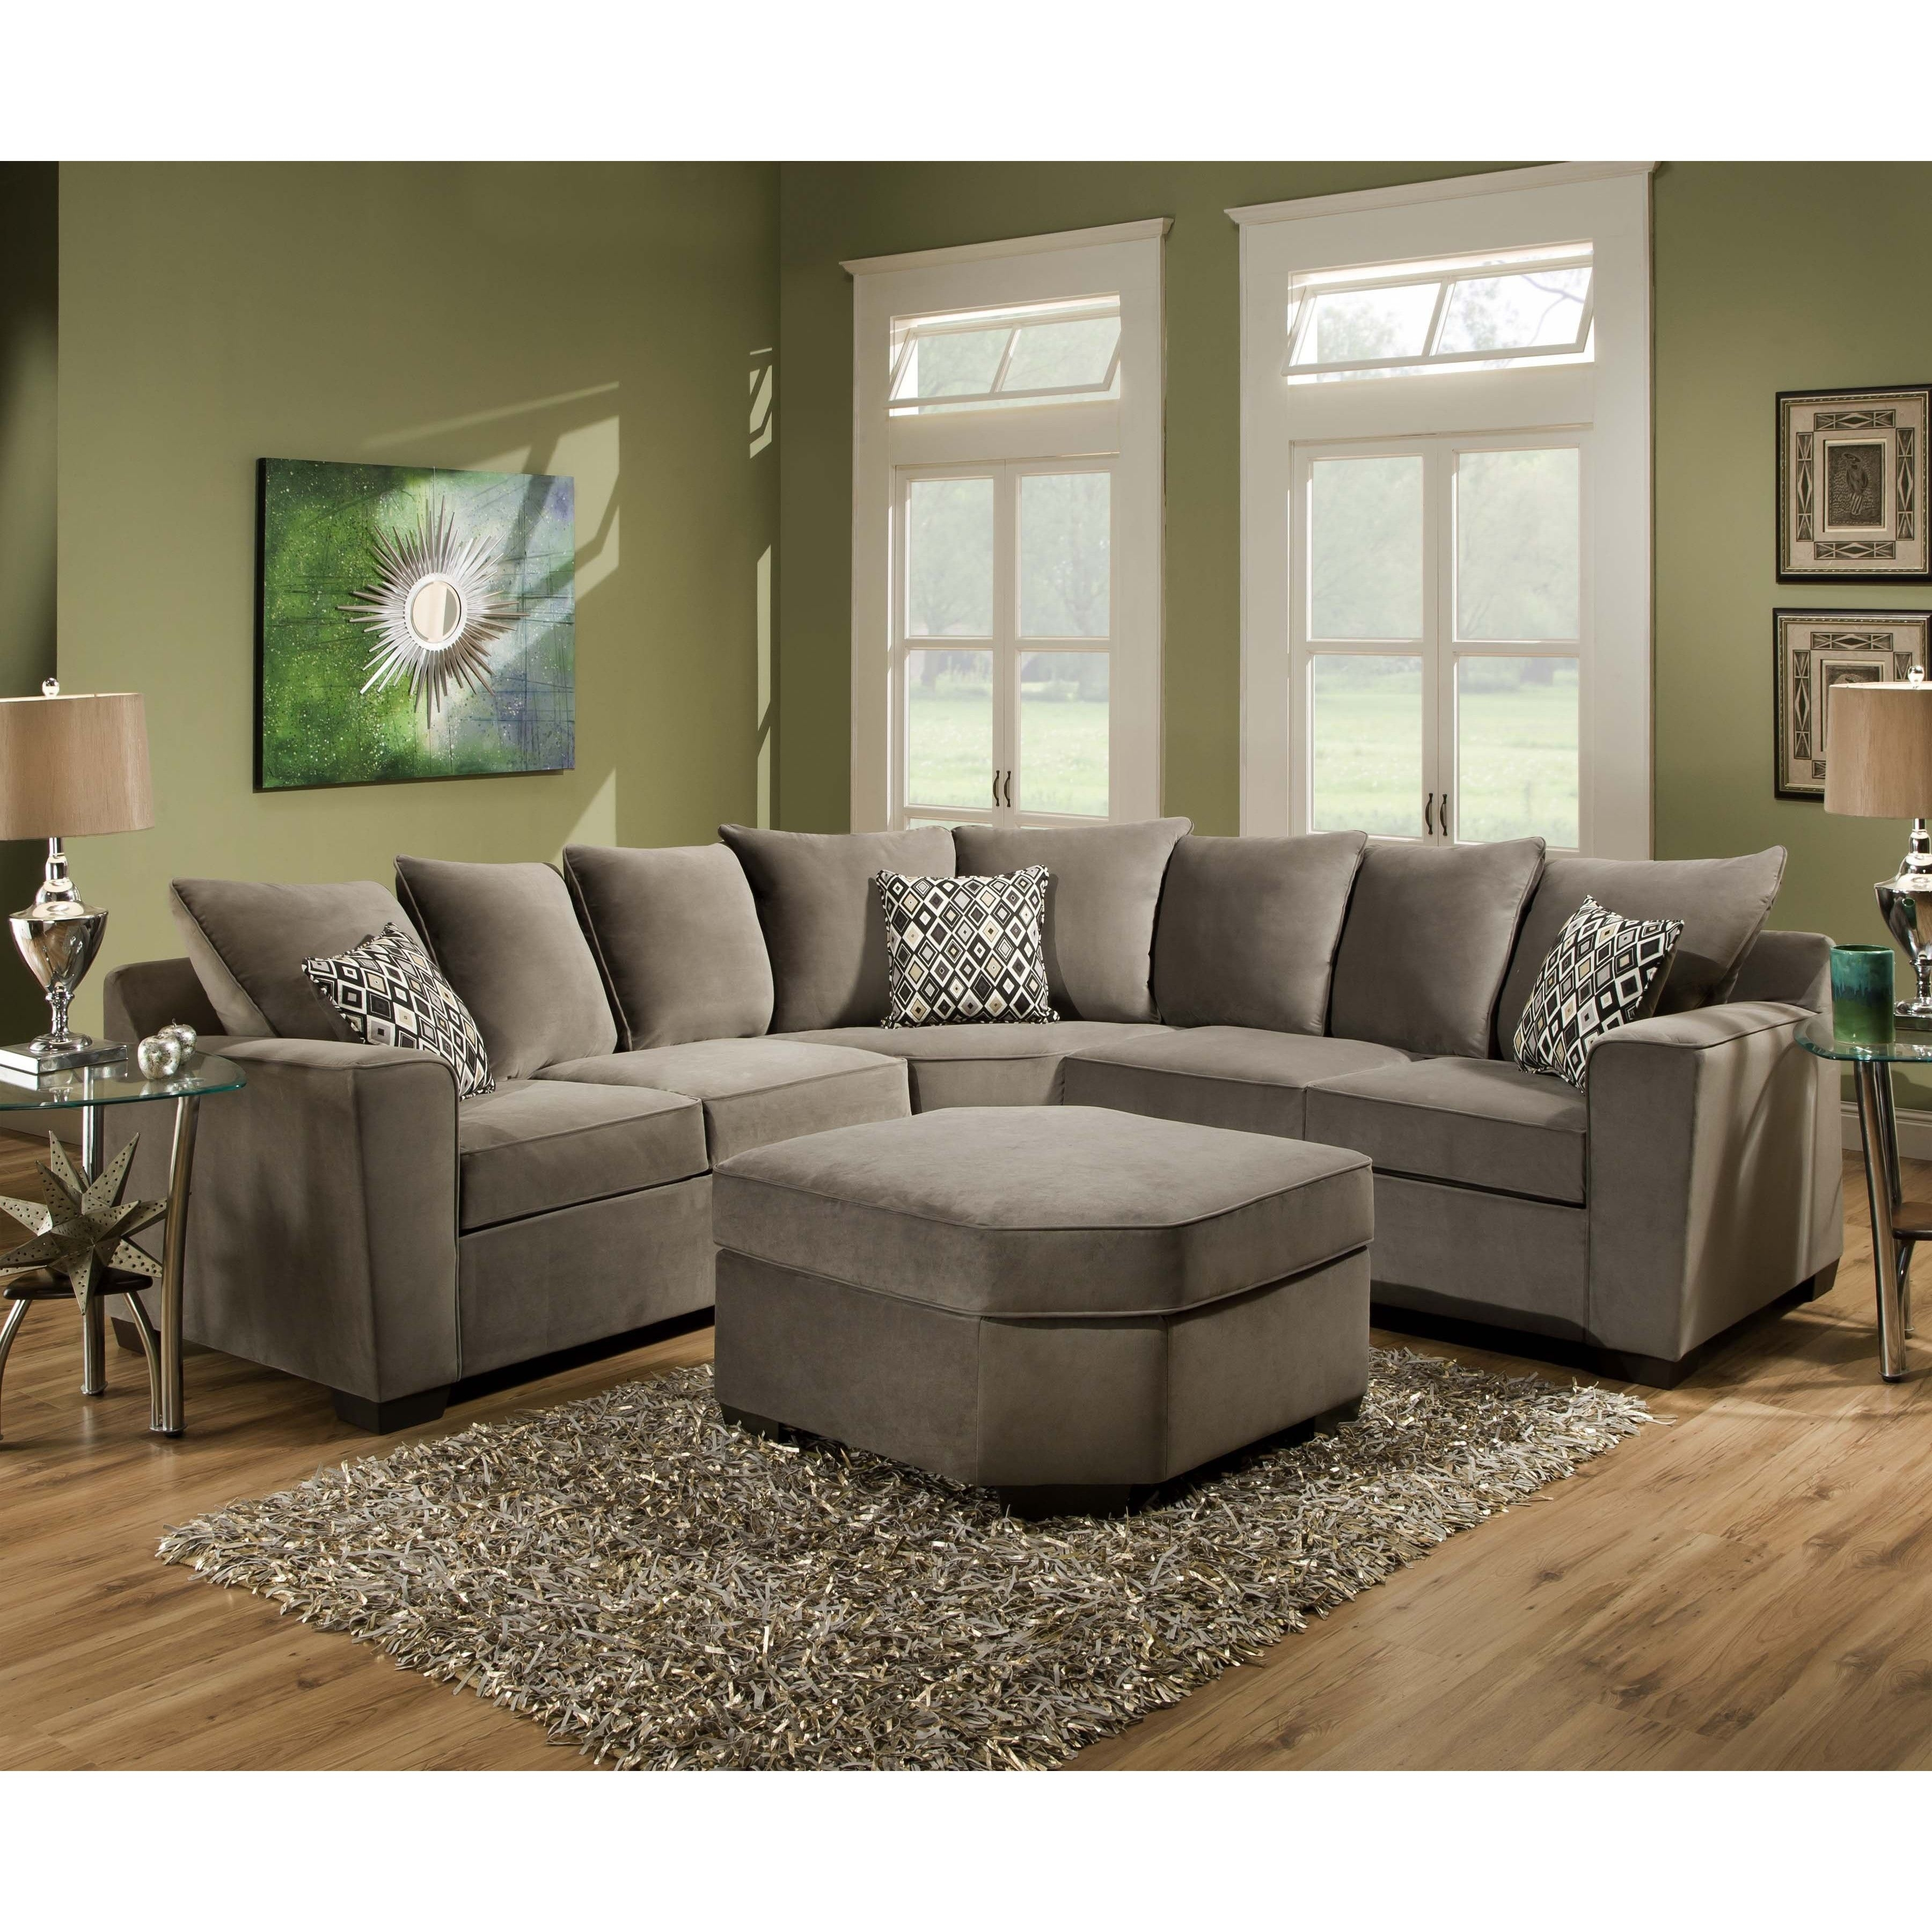 French Country Sectional Sofas   Http://ml2R   Pinterest   Room With Regard To Gainesville Fl Sectional Sofas (View 10 of 10)